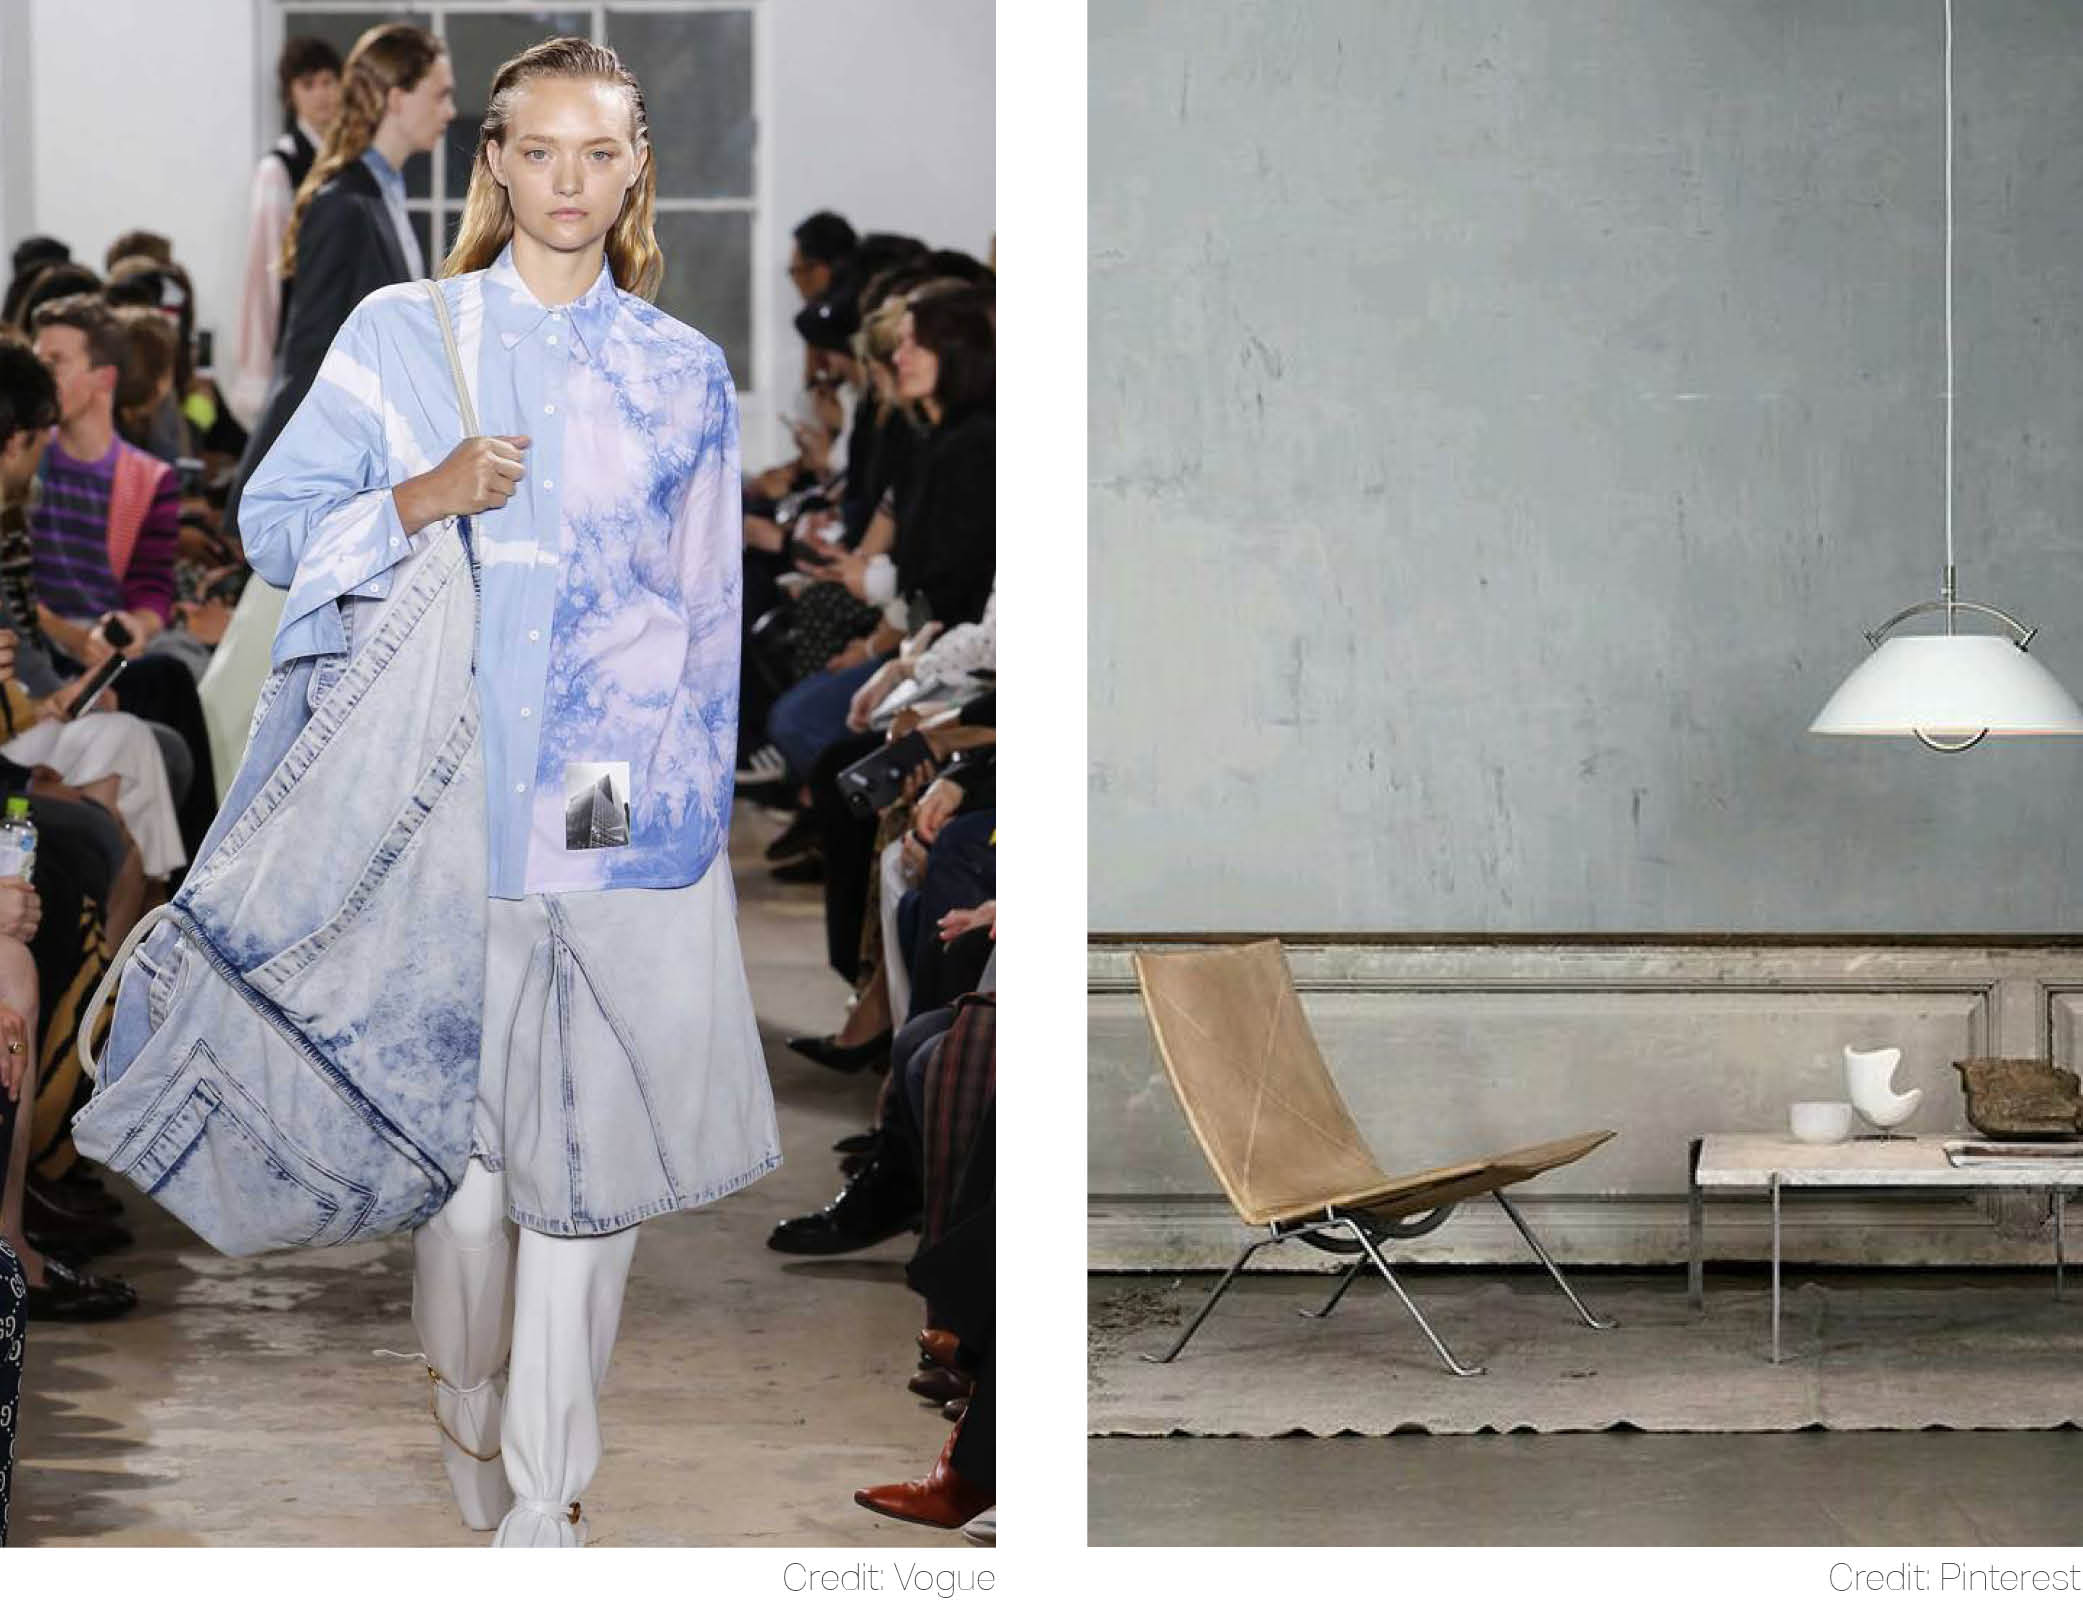 proenza schouler washed out dusk grey wallpaper breathes airiness into interiors